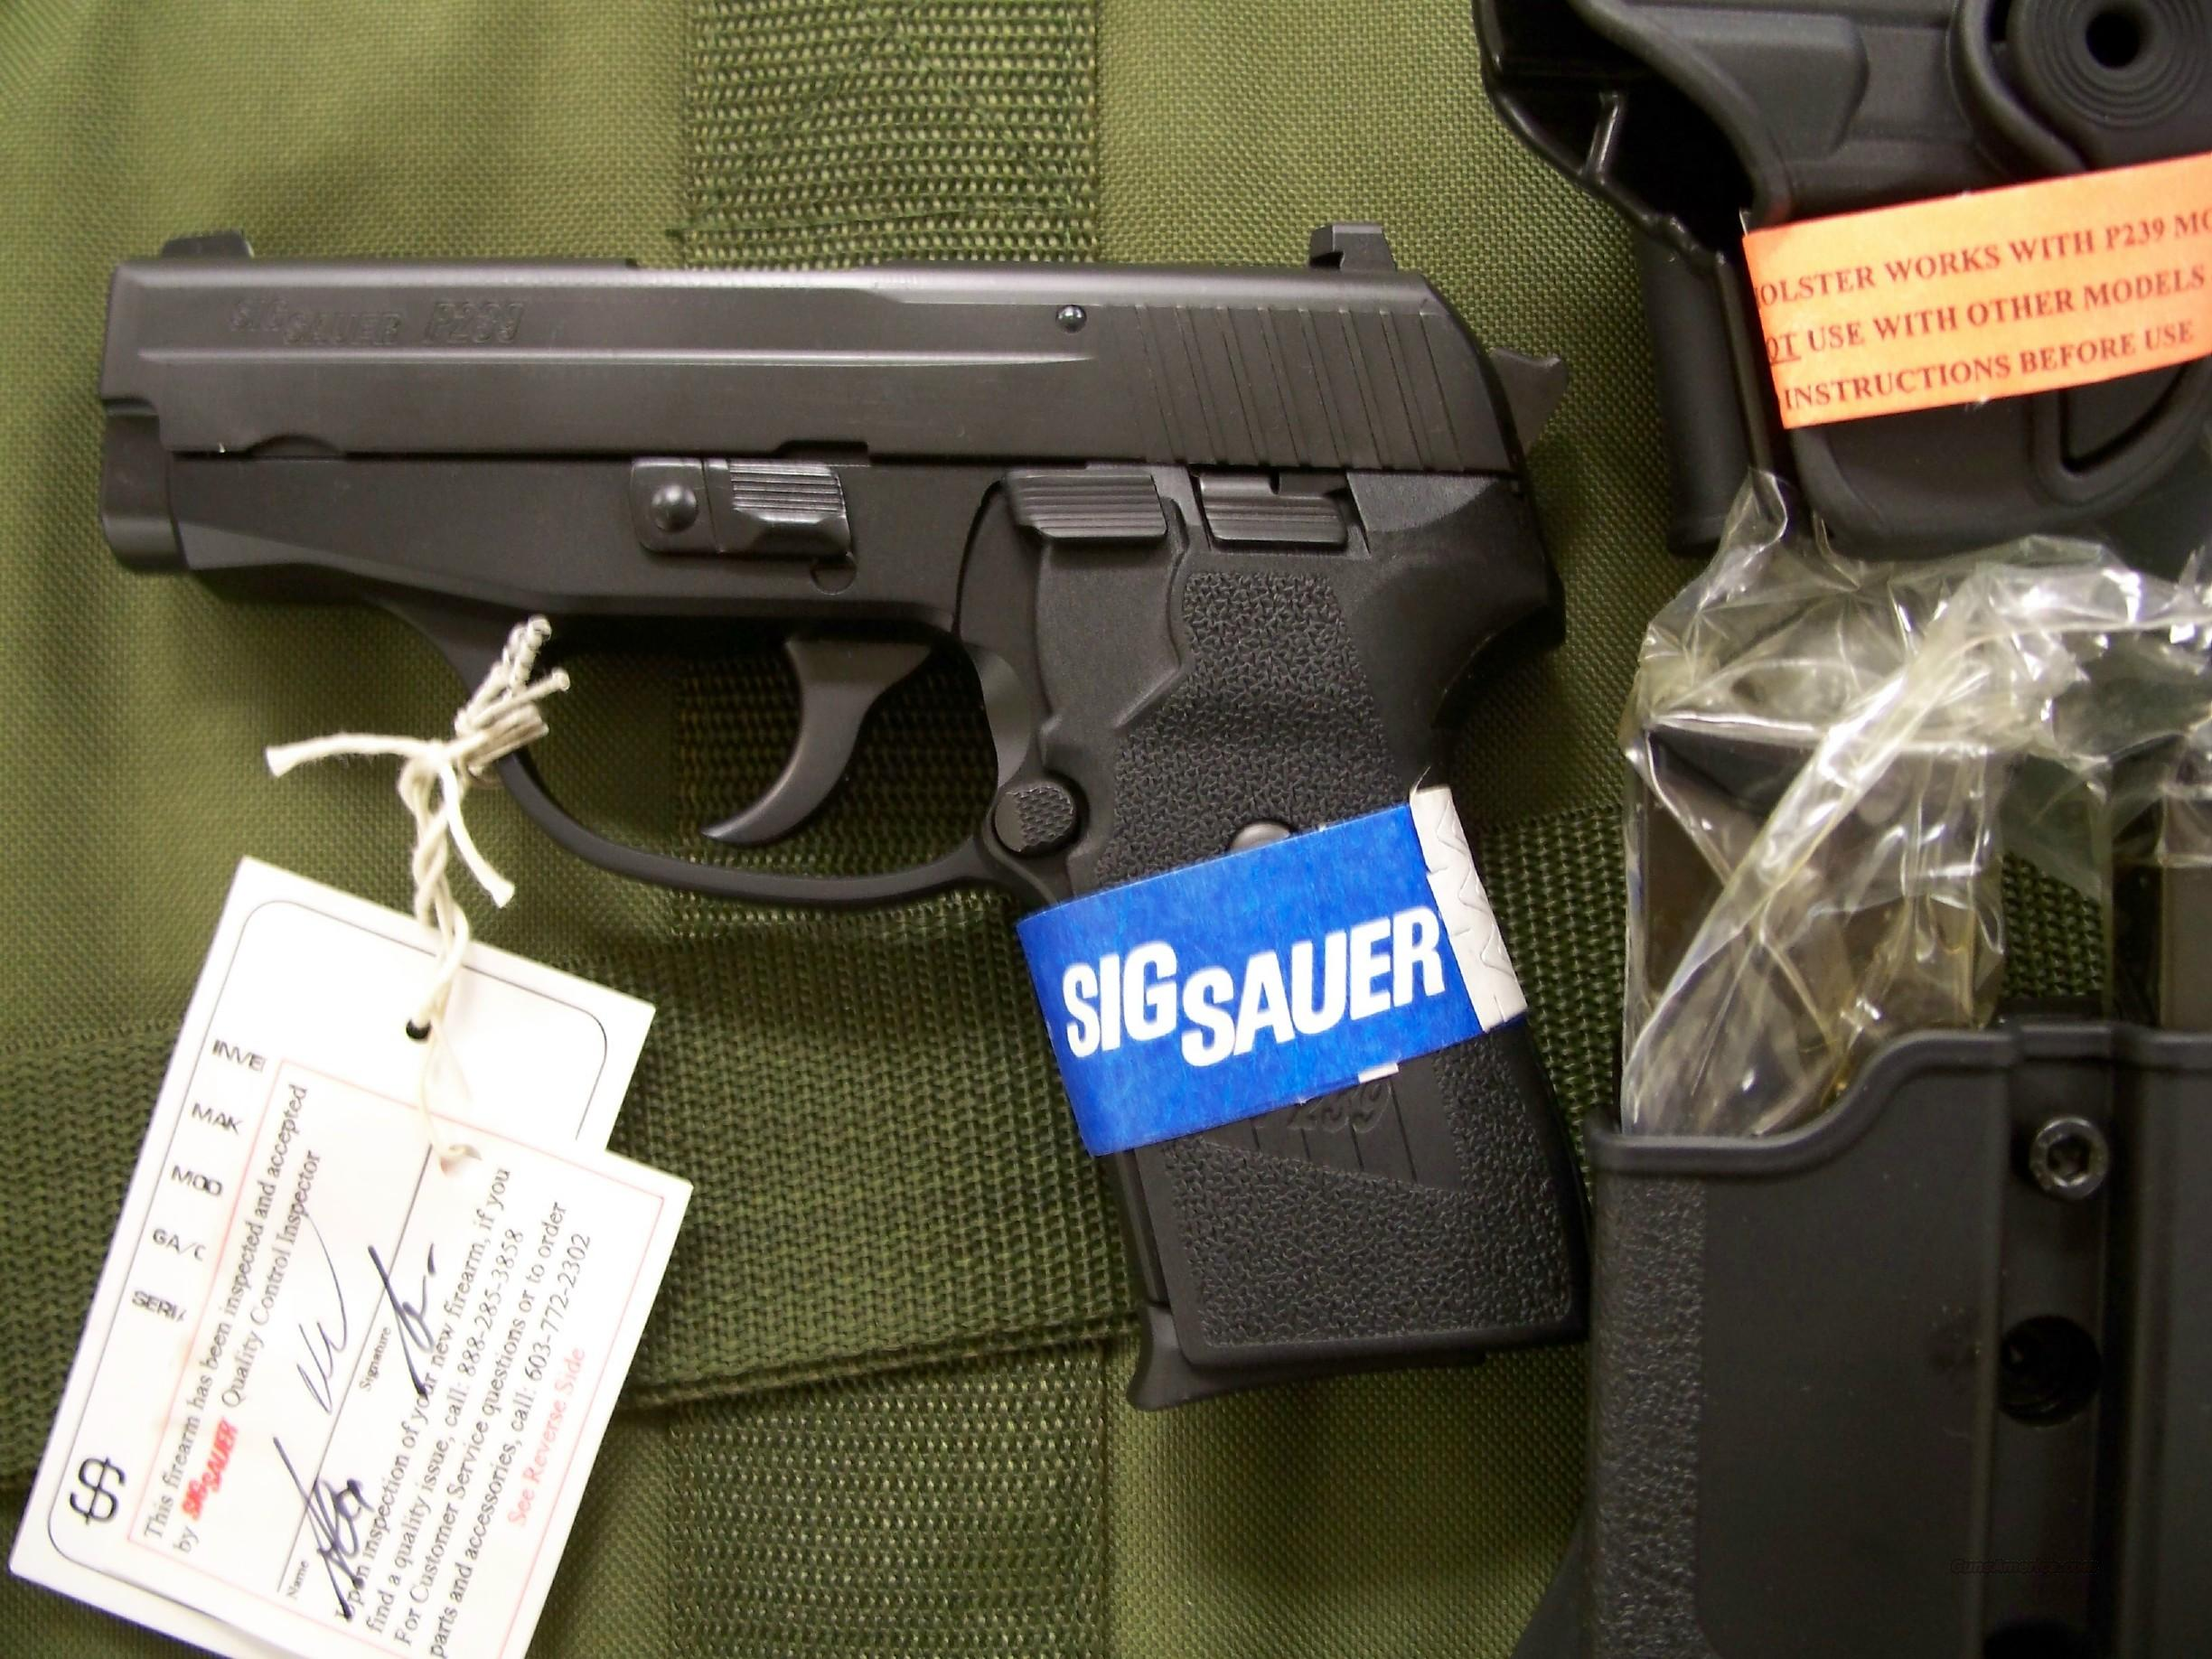 Sig P239 40 S&W night sights 3 mags holster  Guns > Pistols > Sig - Sauer/Sigarms Pistols > P239